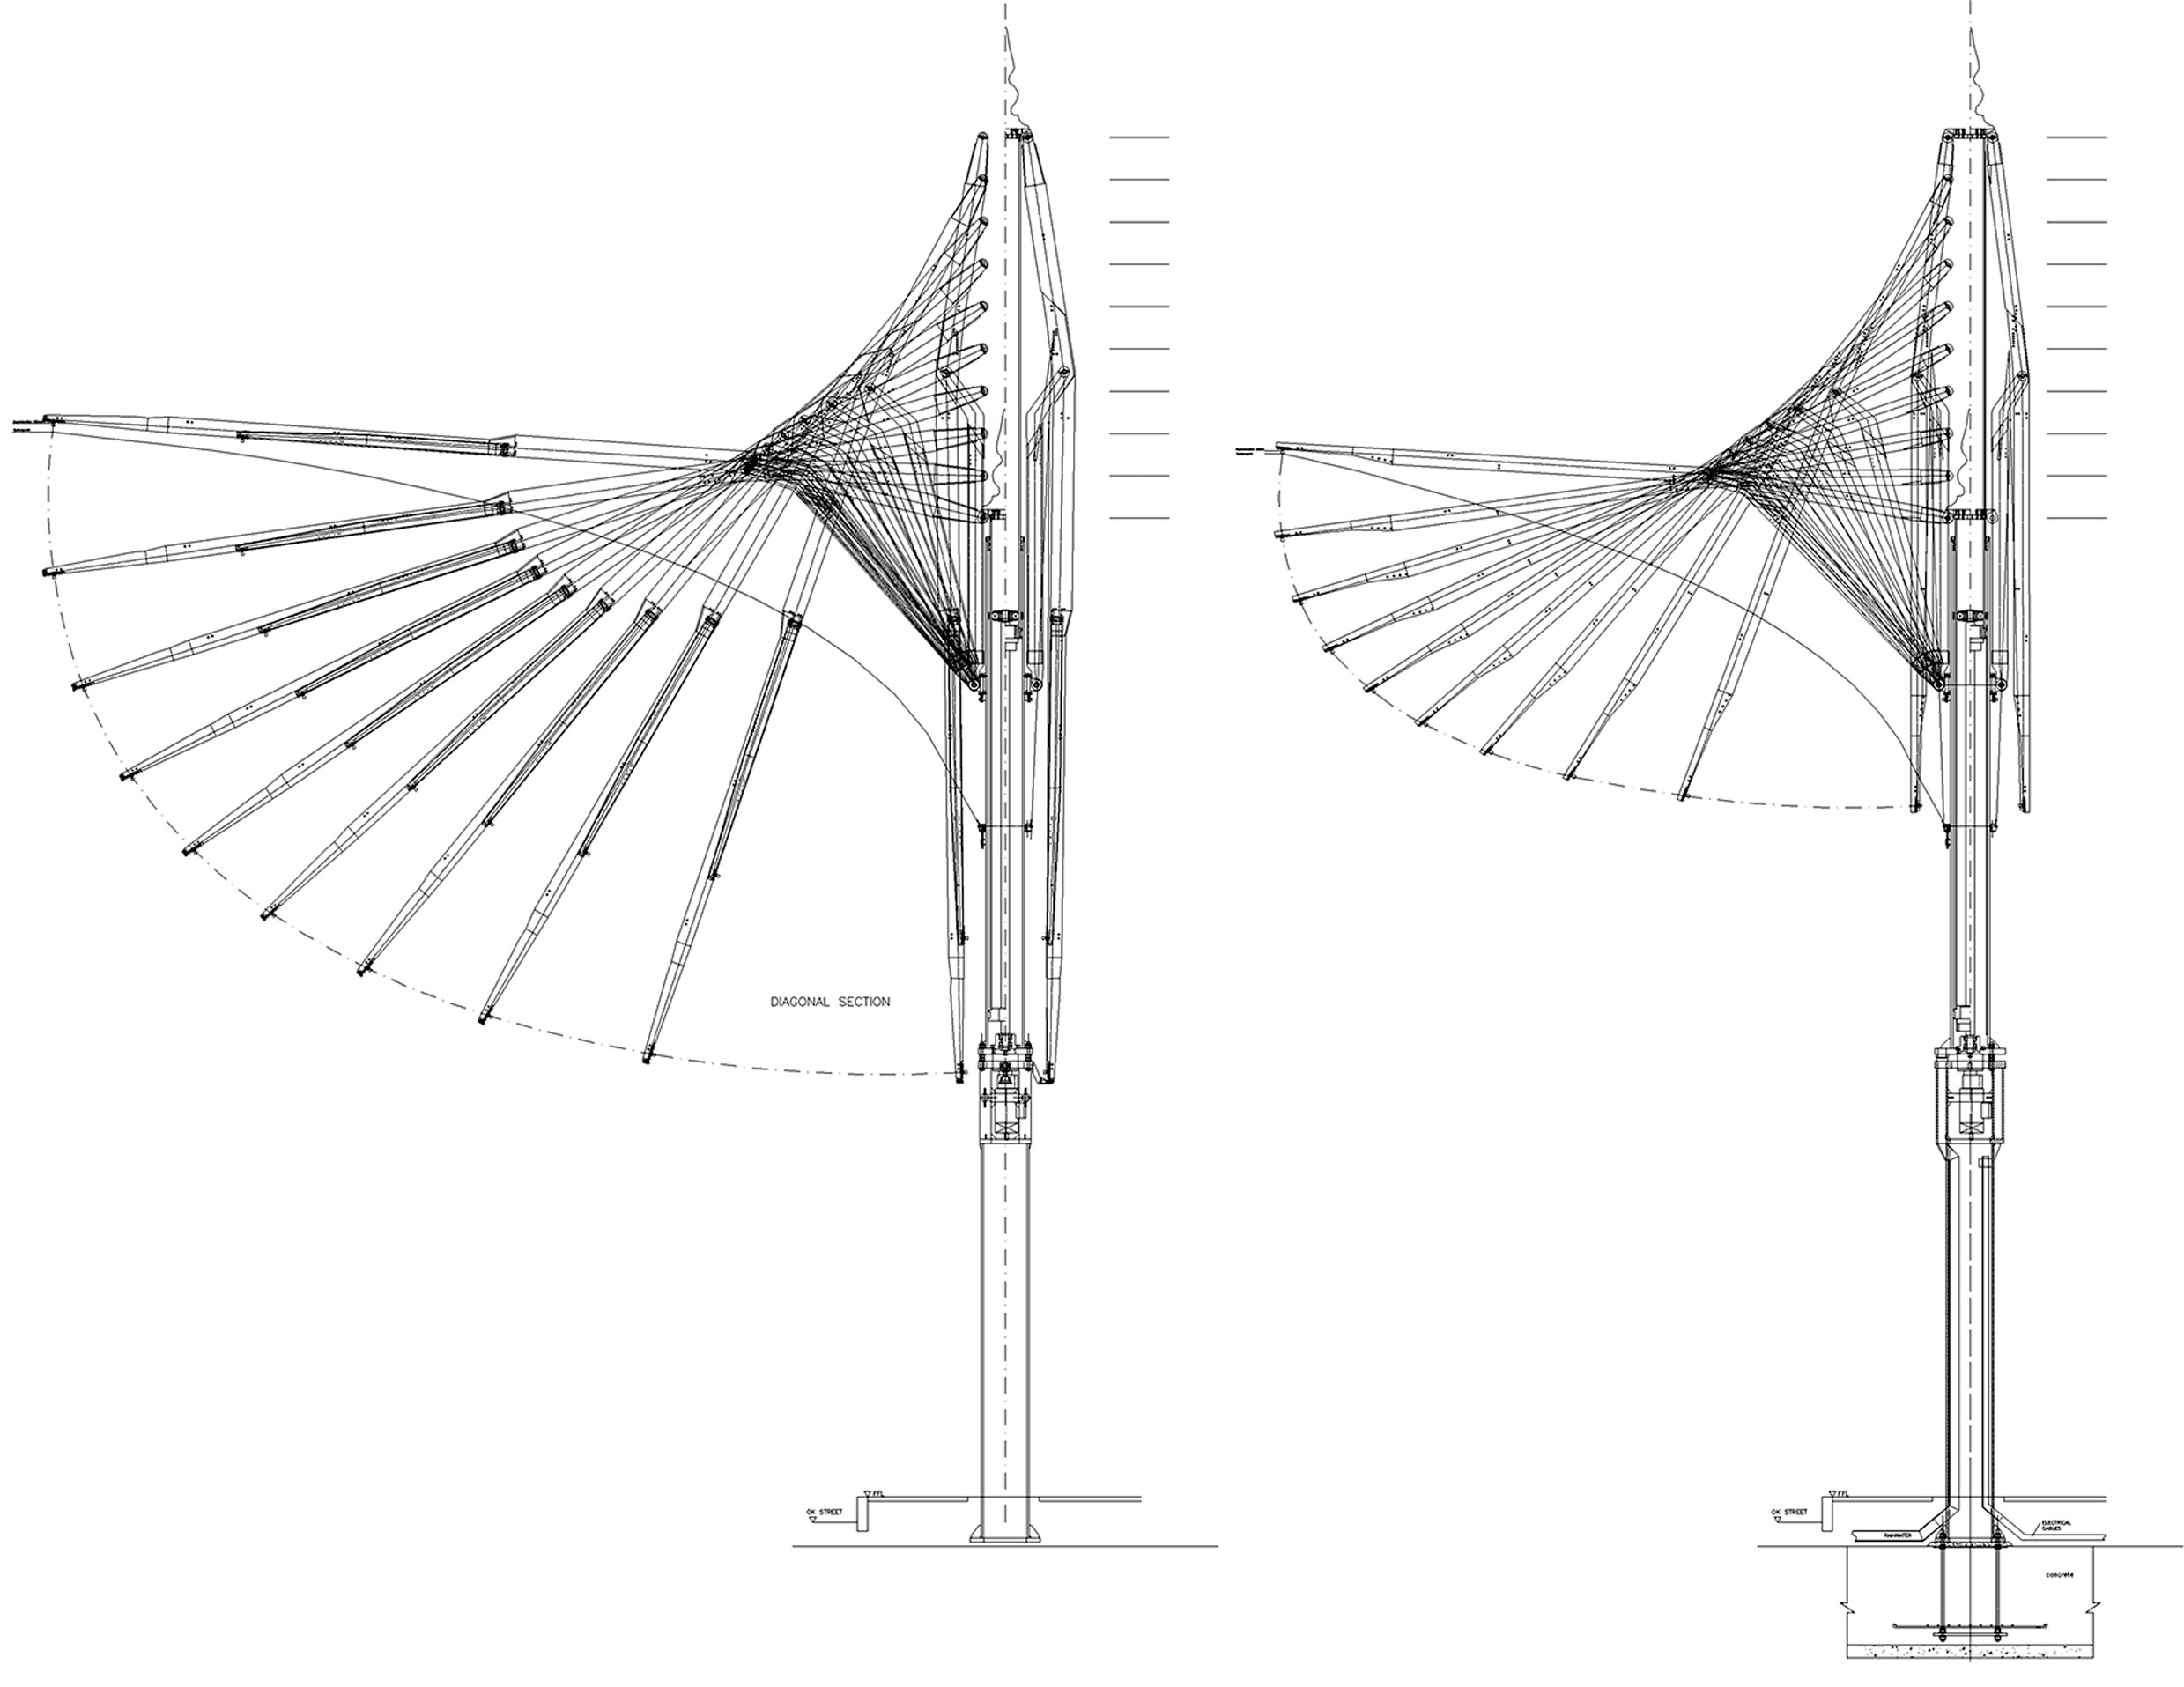 Design based on straight arm system - Four diagonal arms are each connected with two passive and four middle arms. The surface tensions are transmitted to the fittings on the steel frame of the umbrella by peripheral and radial belts and cables.